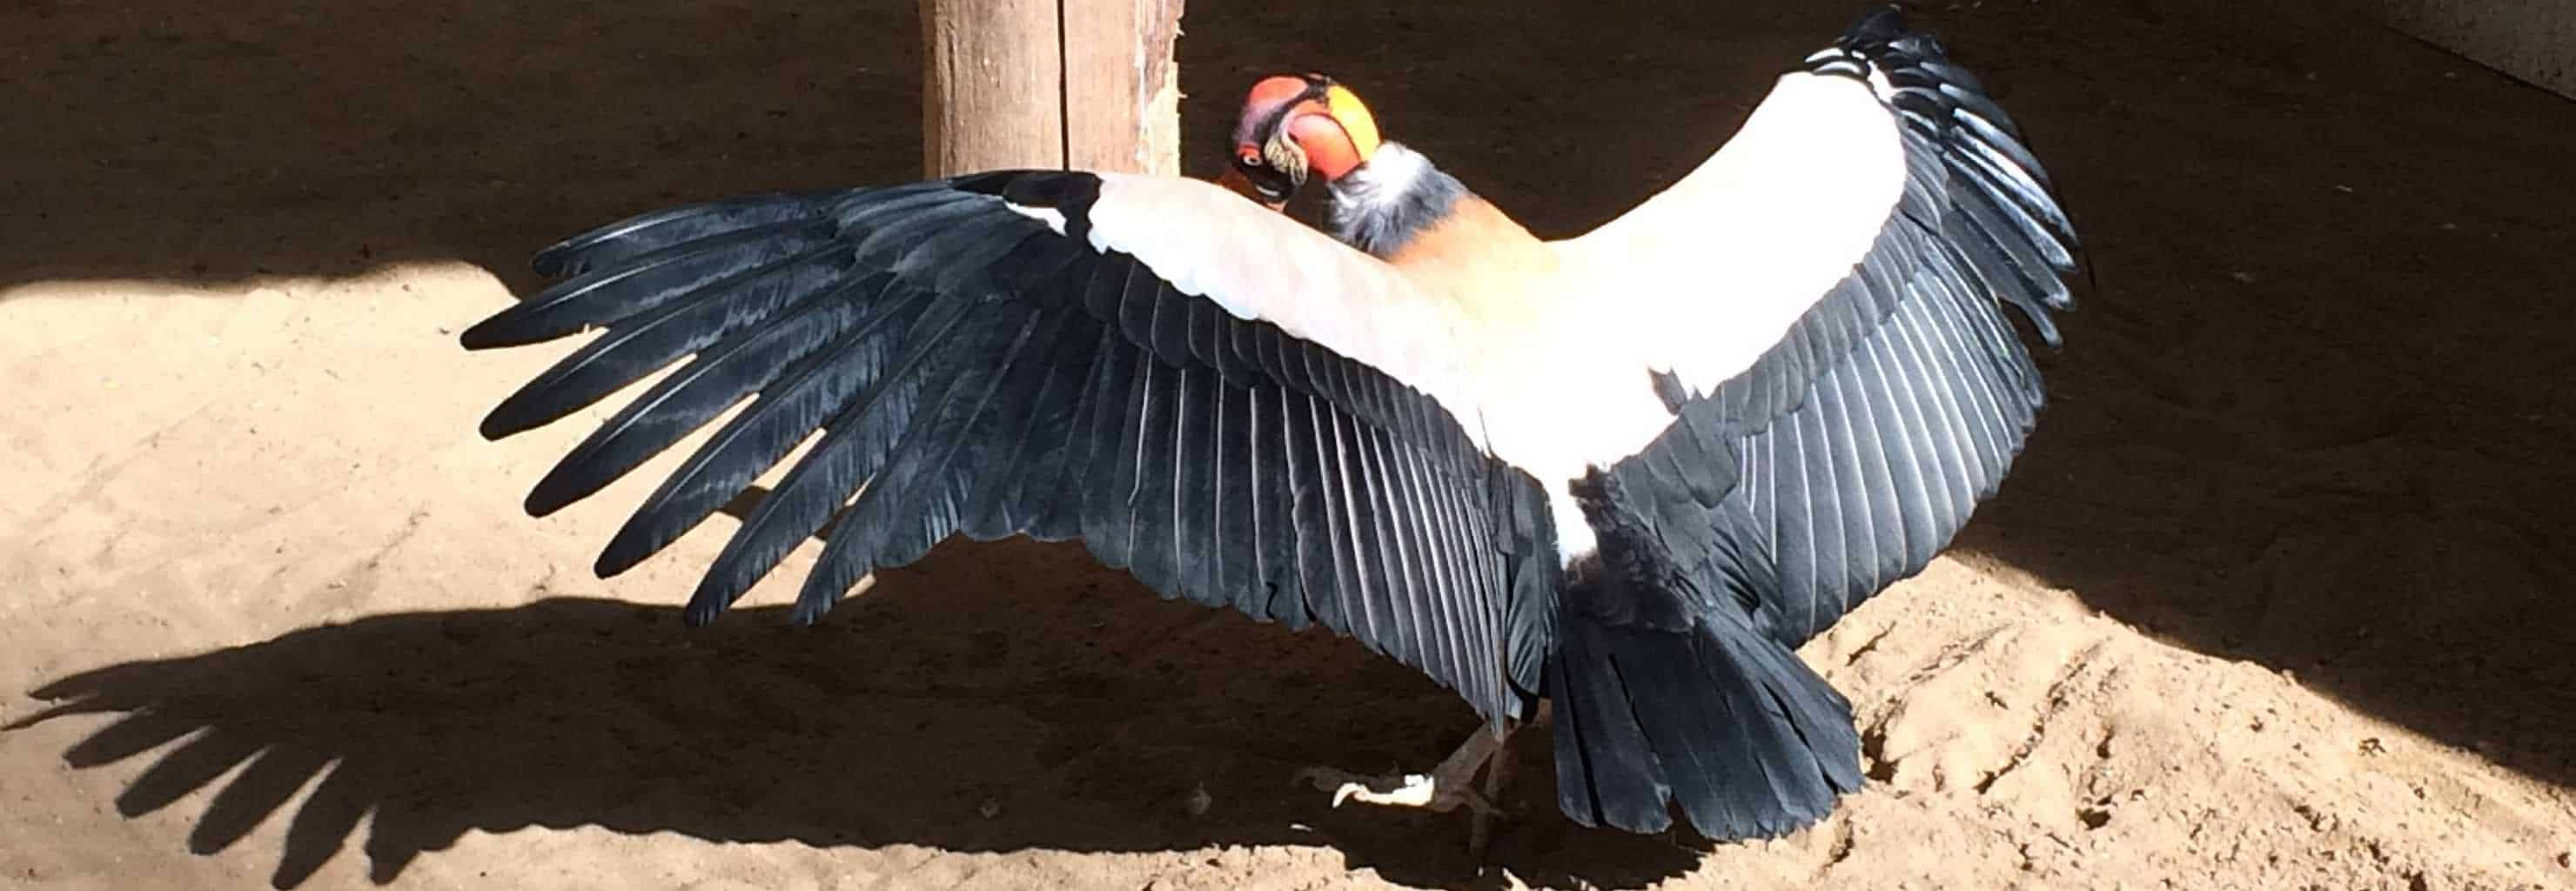 King Vulture at National Centre for Birds of Prey